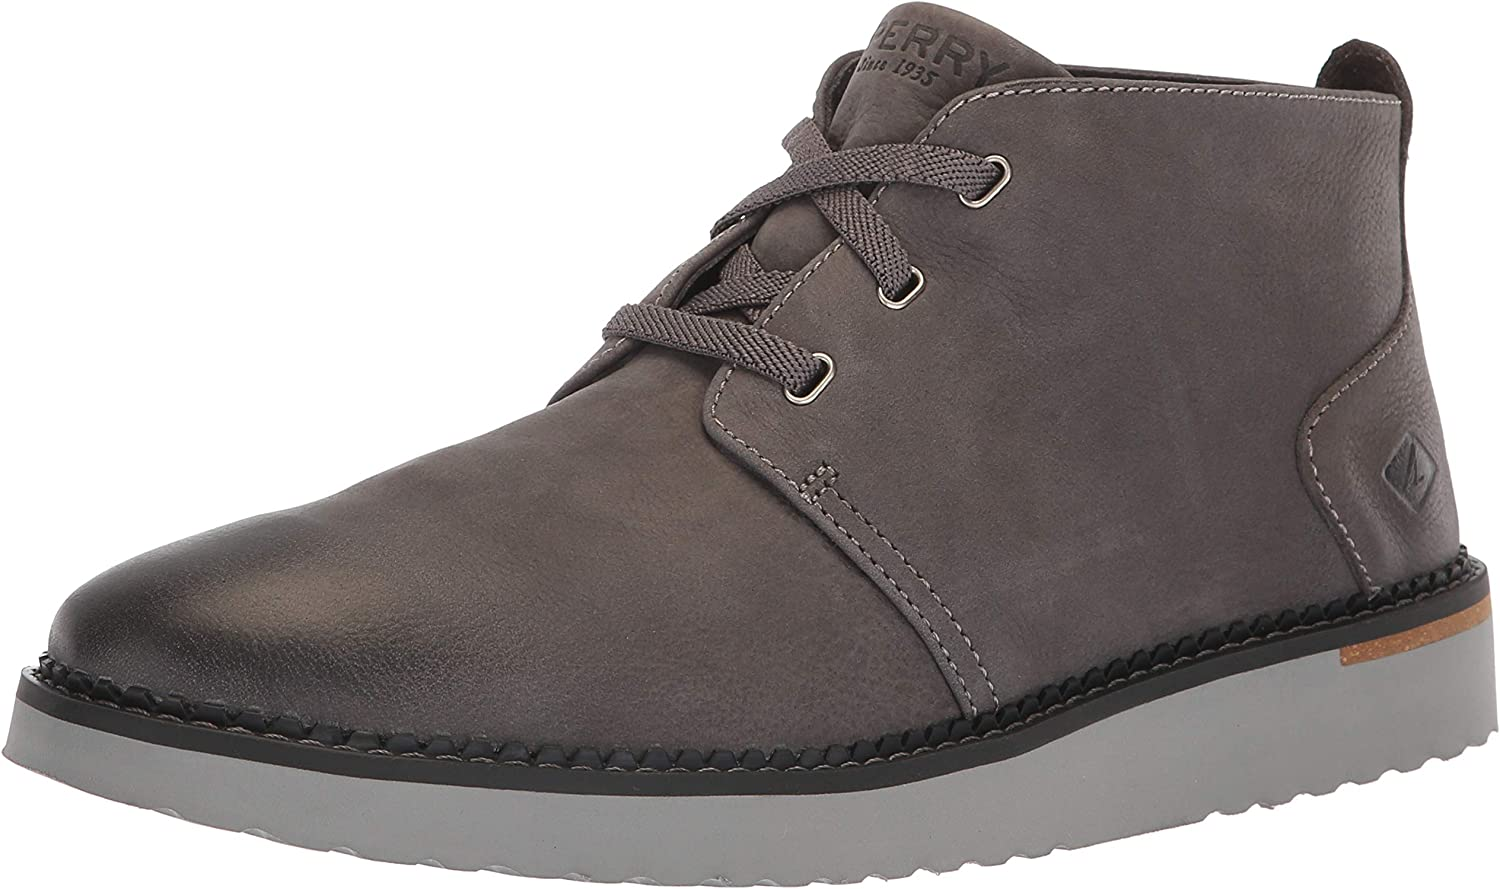 Sperry Men's Camden Oxford Chukka Burnished Boot